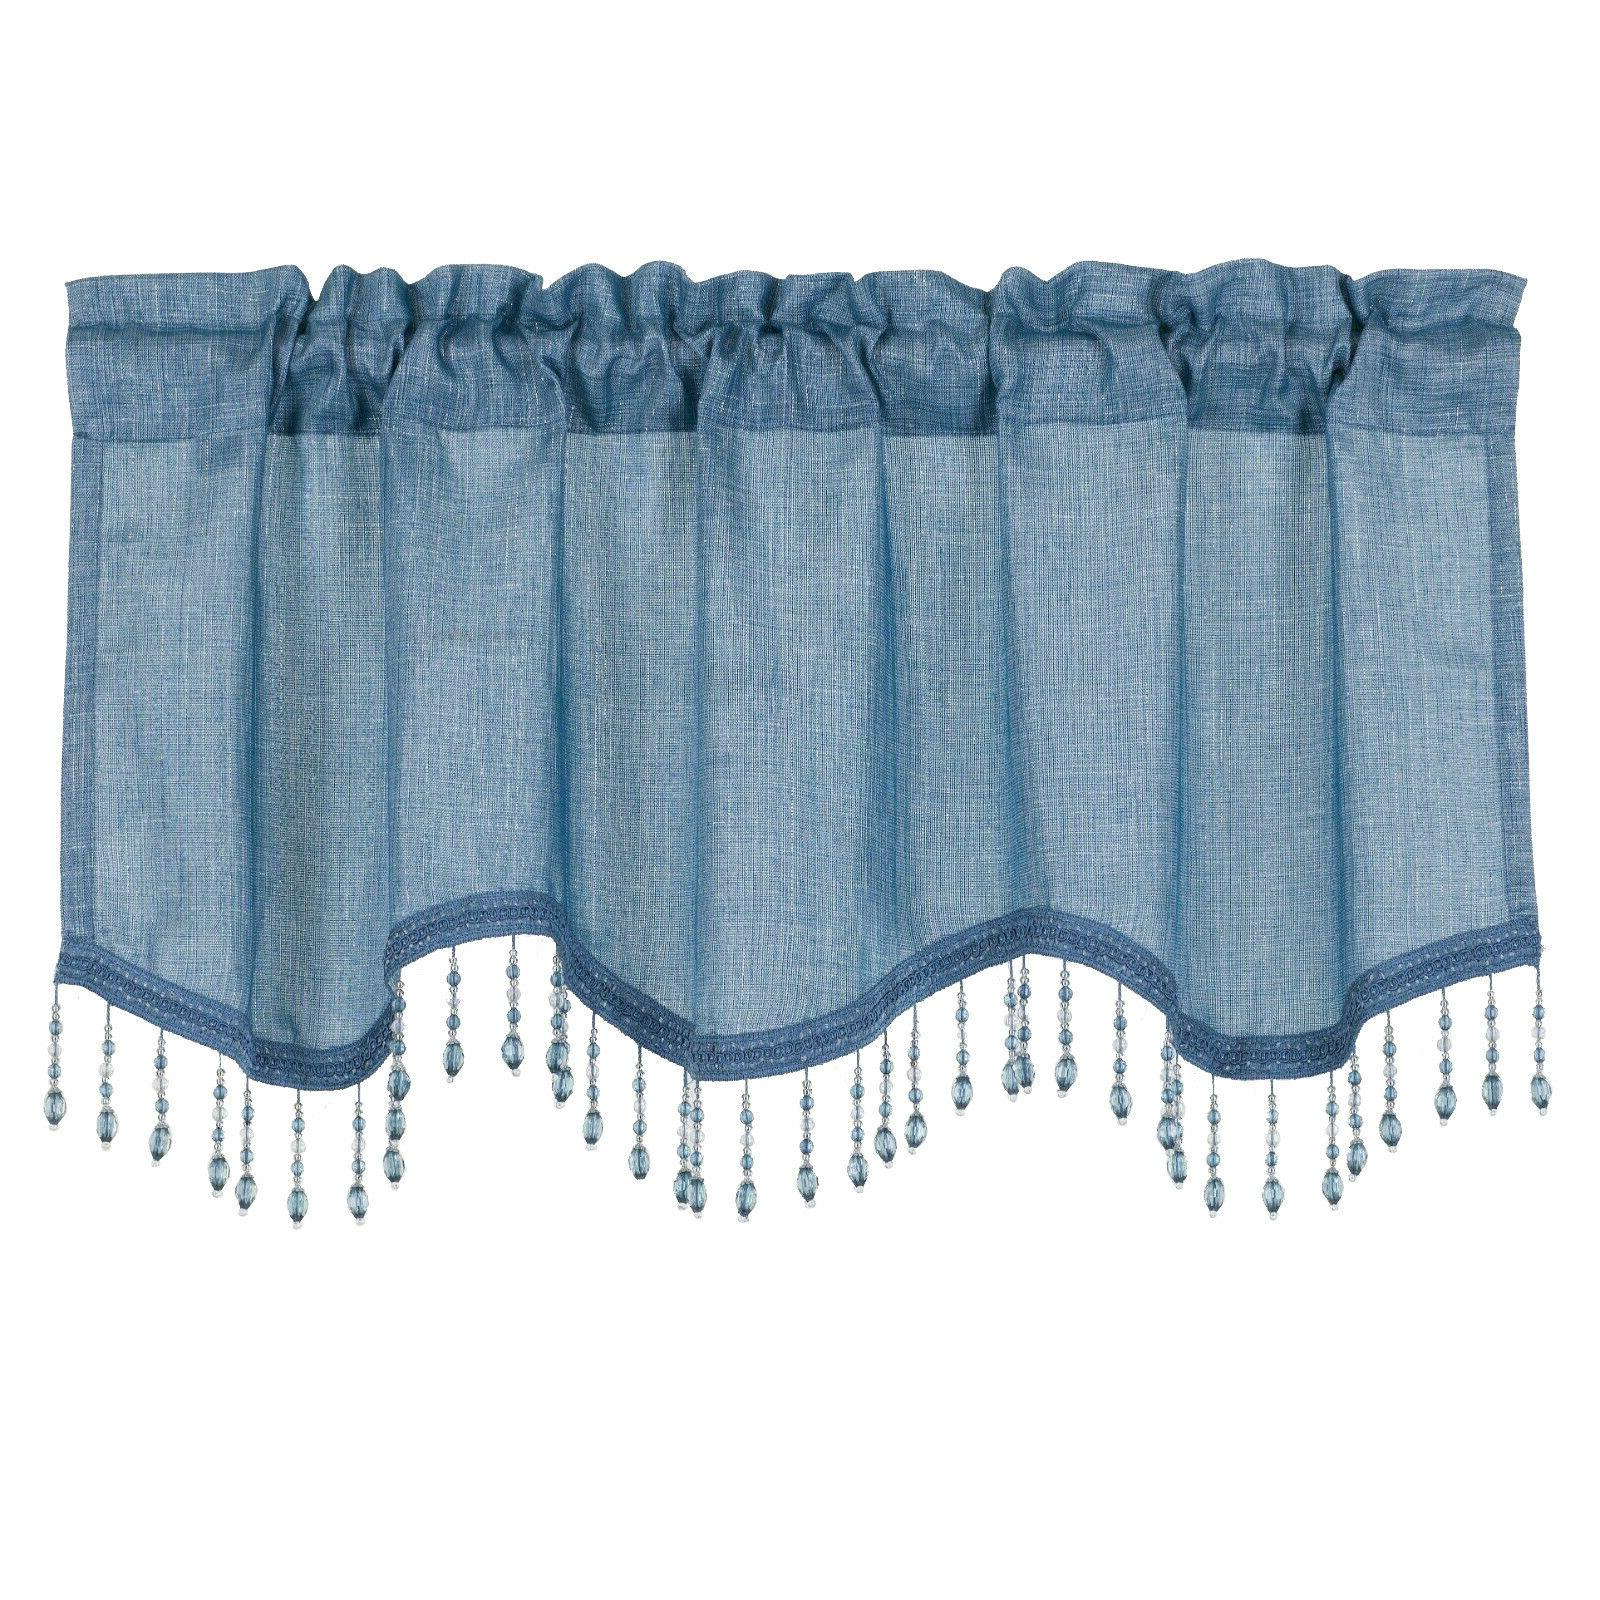 Scalloped Window Valance Curtains -